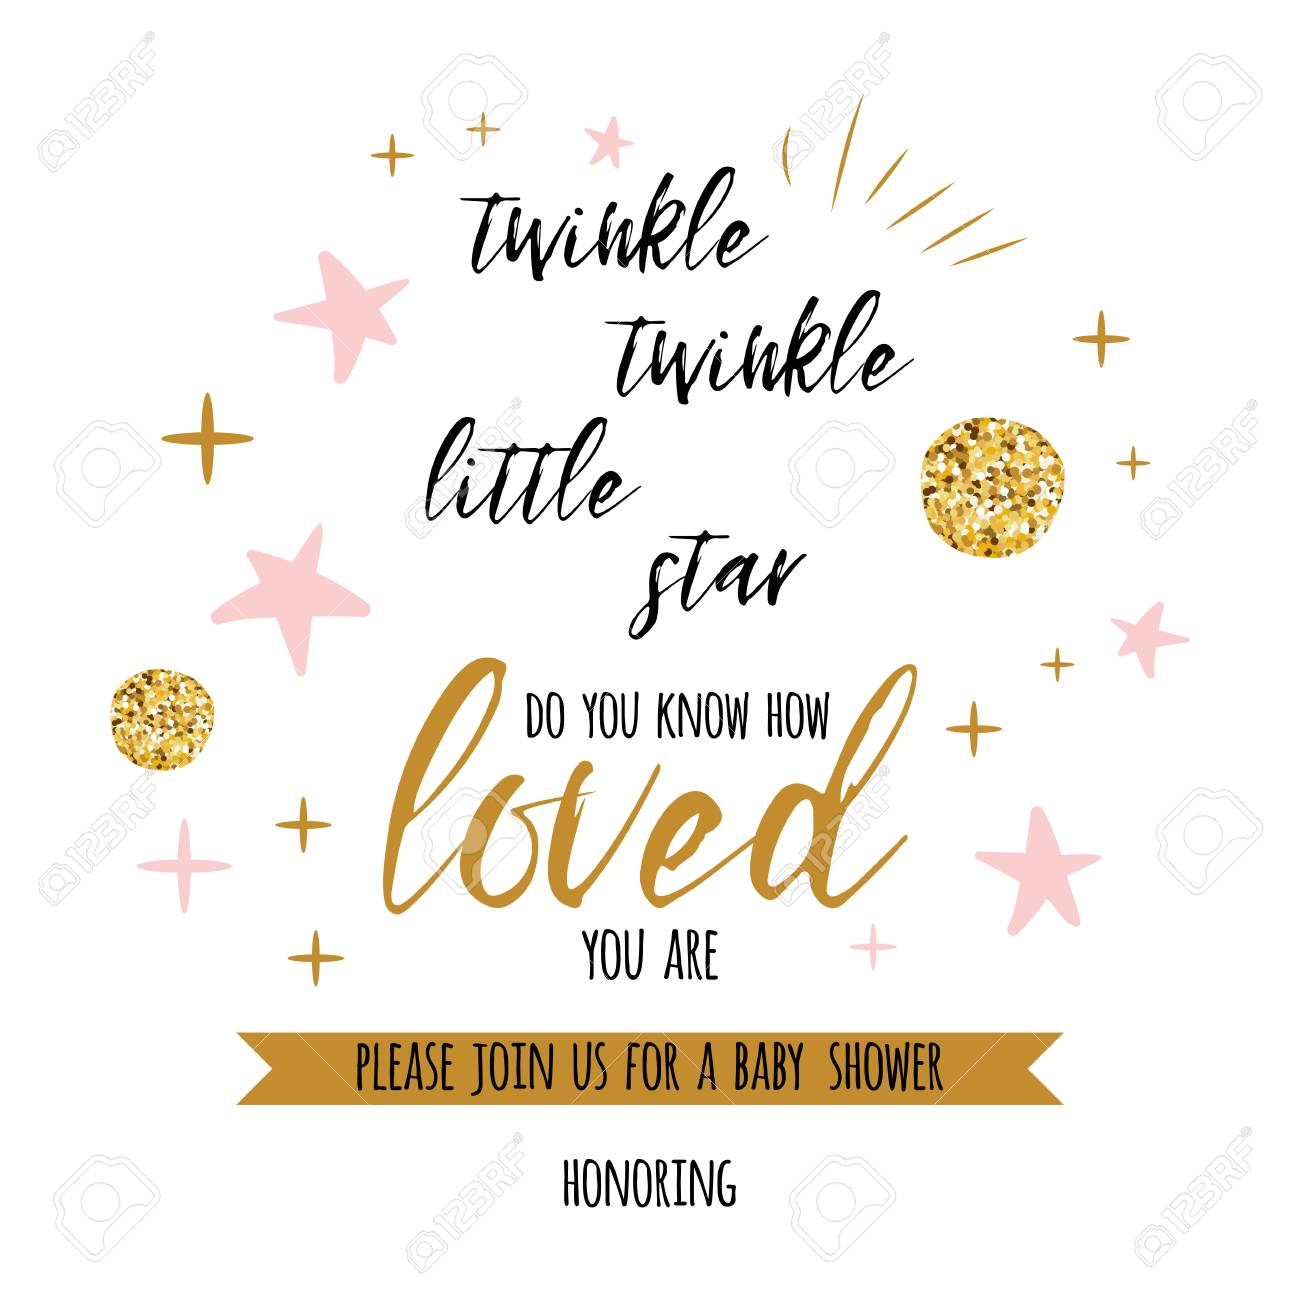 twinkle twinkle little star text with cute gold pink colors for